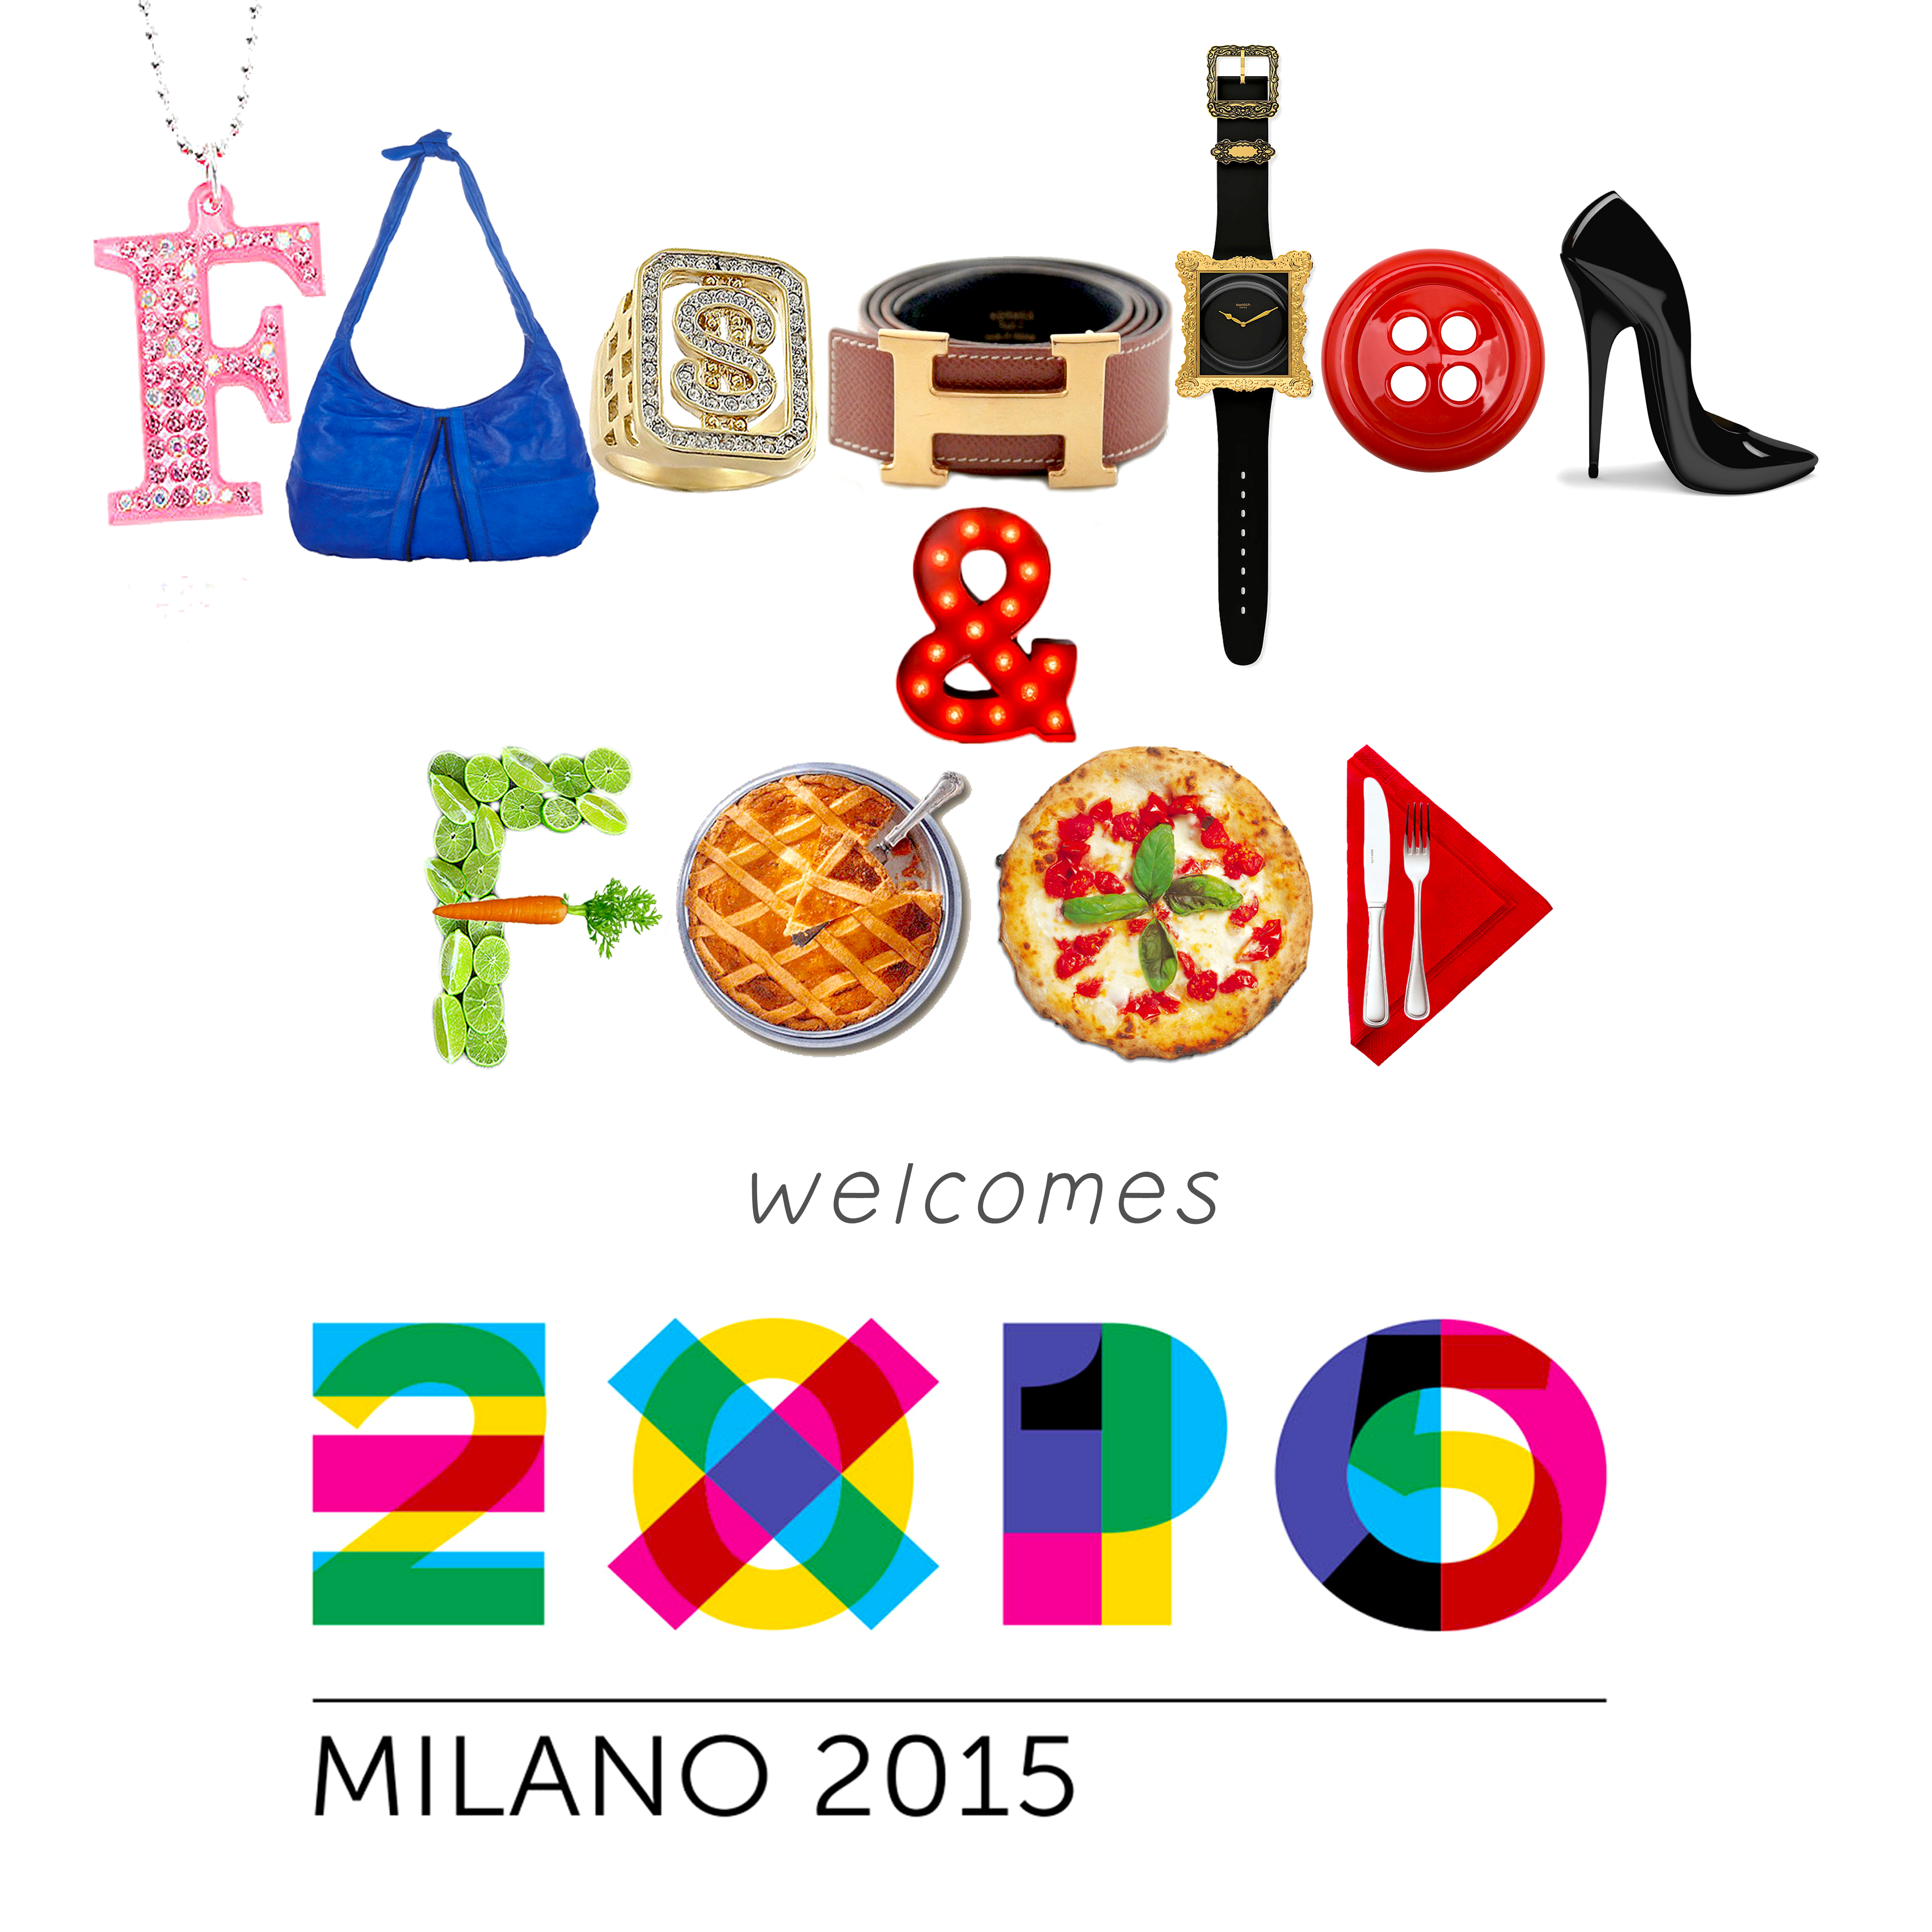 Expo2015, trends, personal shopper, personal stylist, image consultant, Silk Gift Milan, shopping, shopping in milan, milan